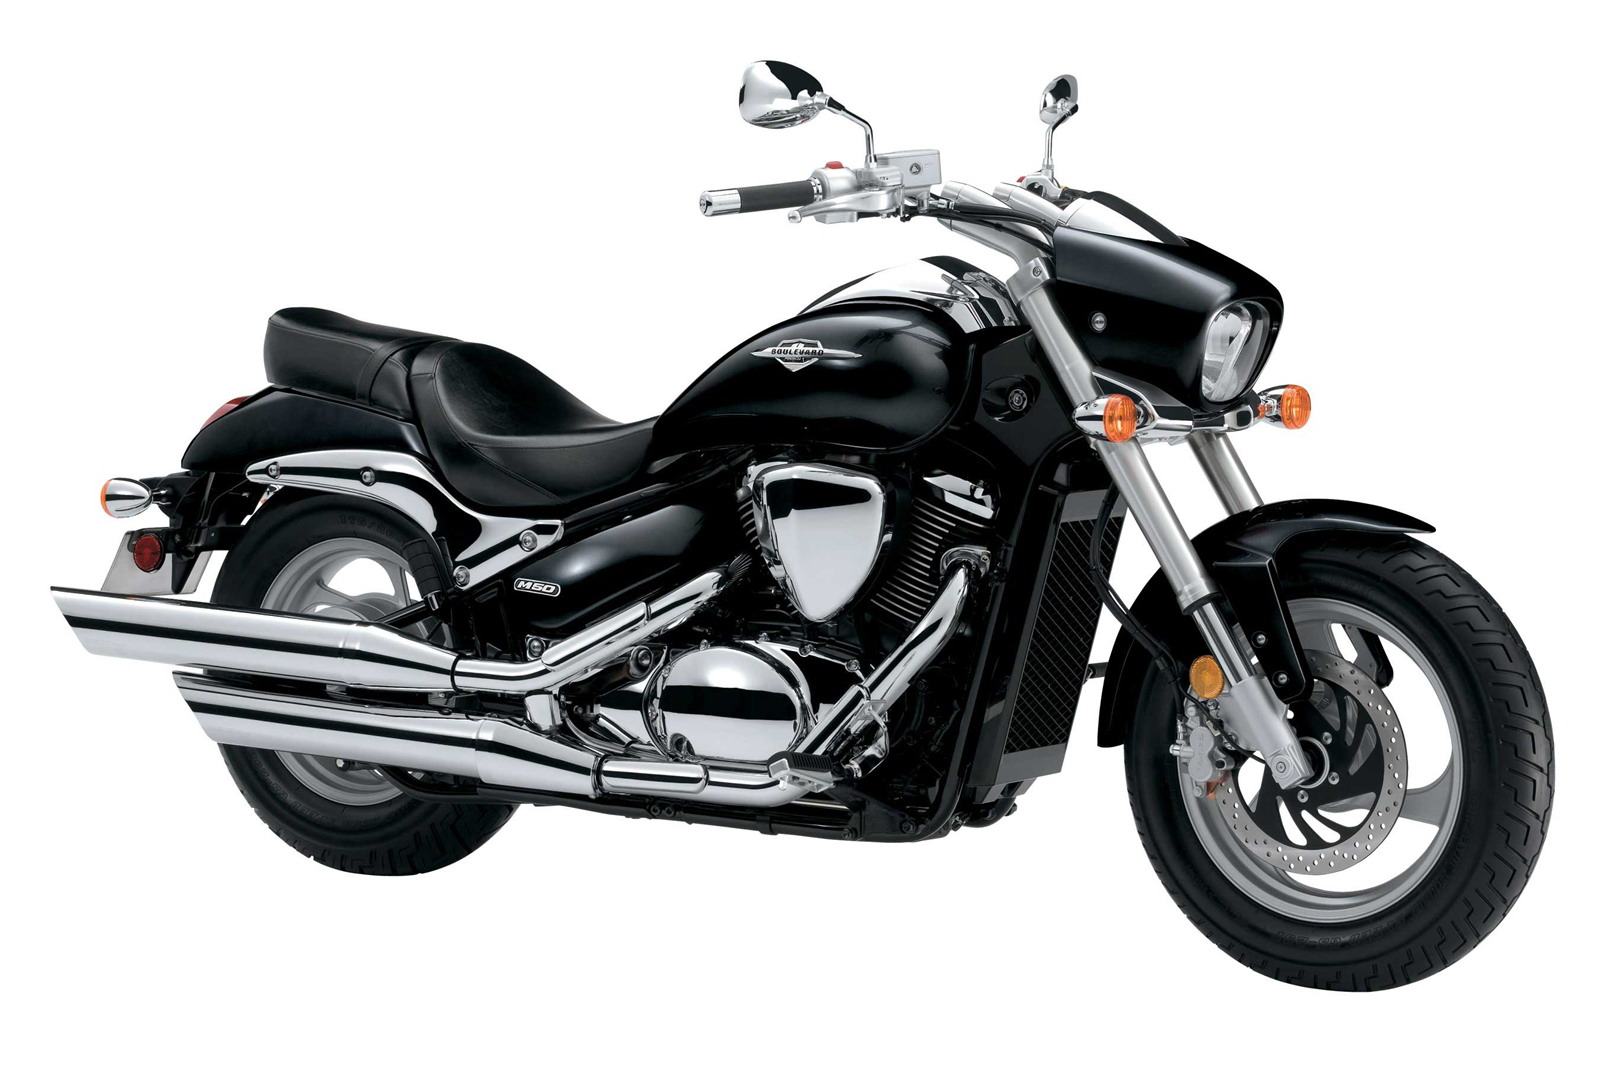 2010 Suzuki Boulevard M50 | Top Speed